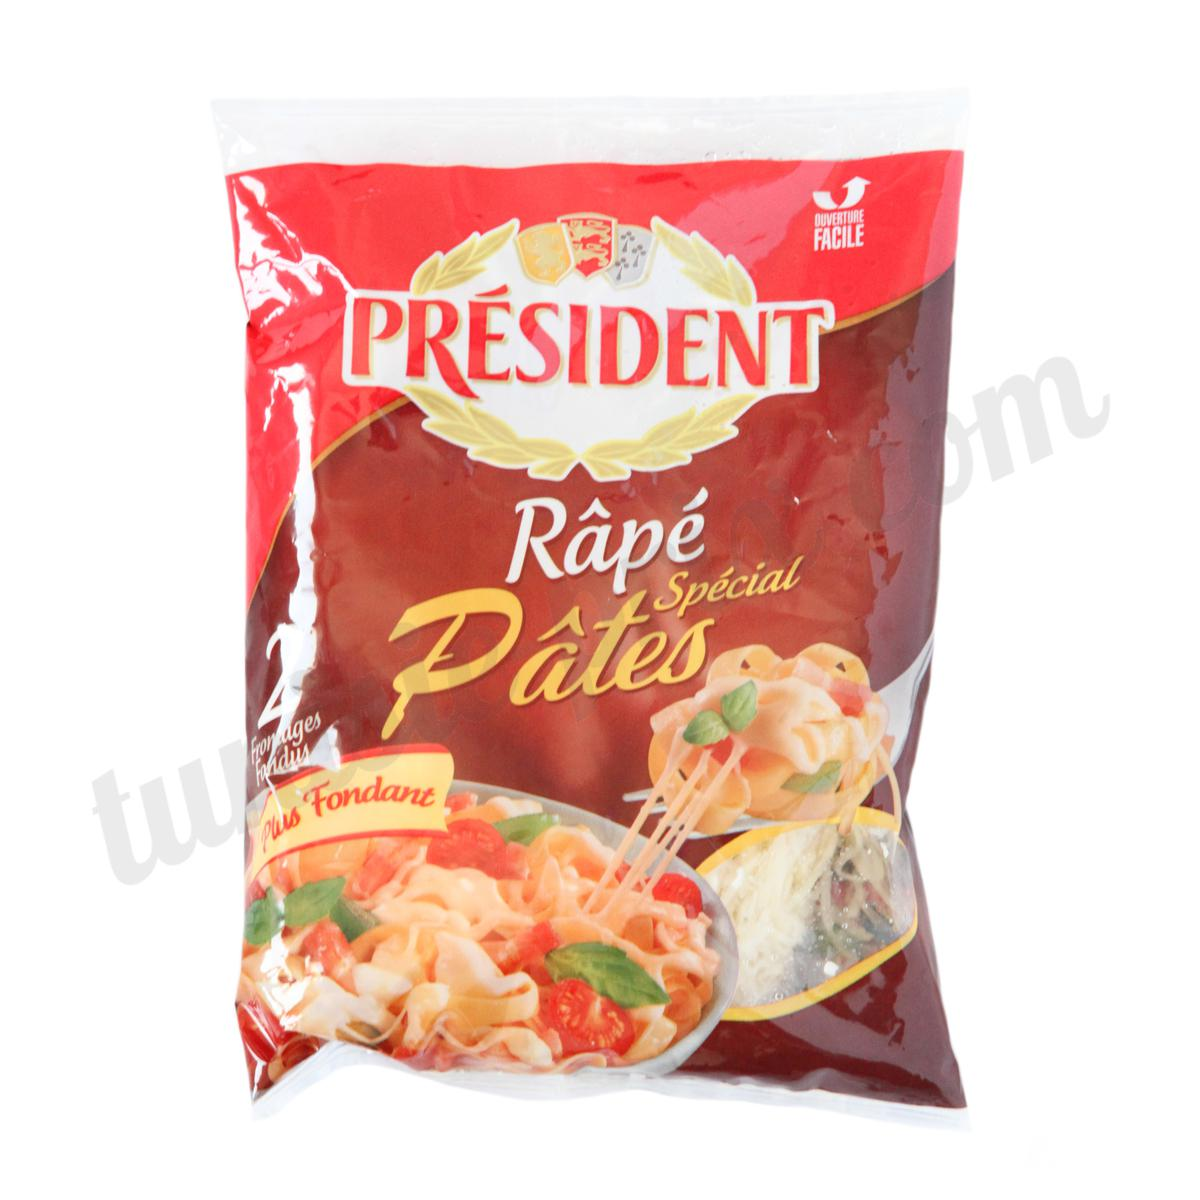 Fromage r p special p tes pr sident 125g tunisie for Fromage en special